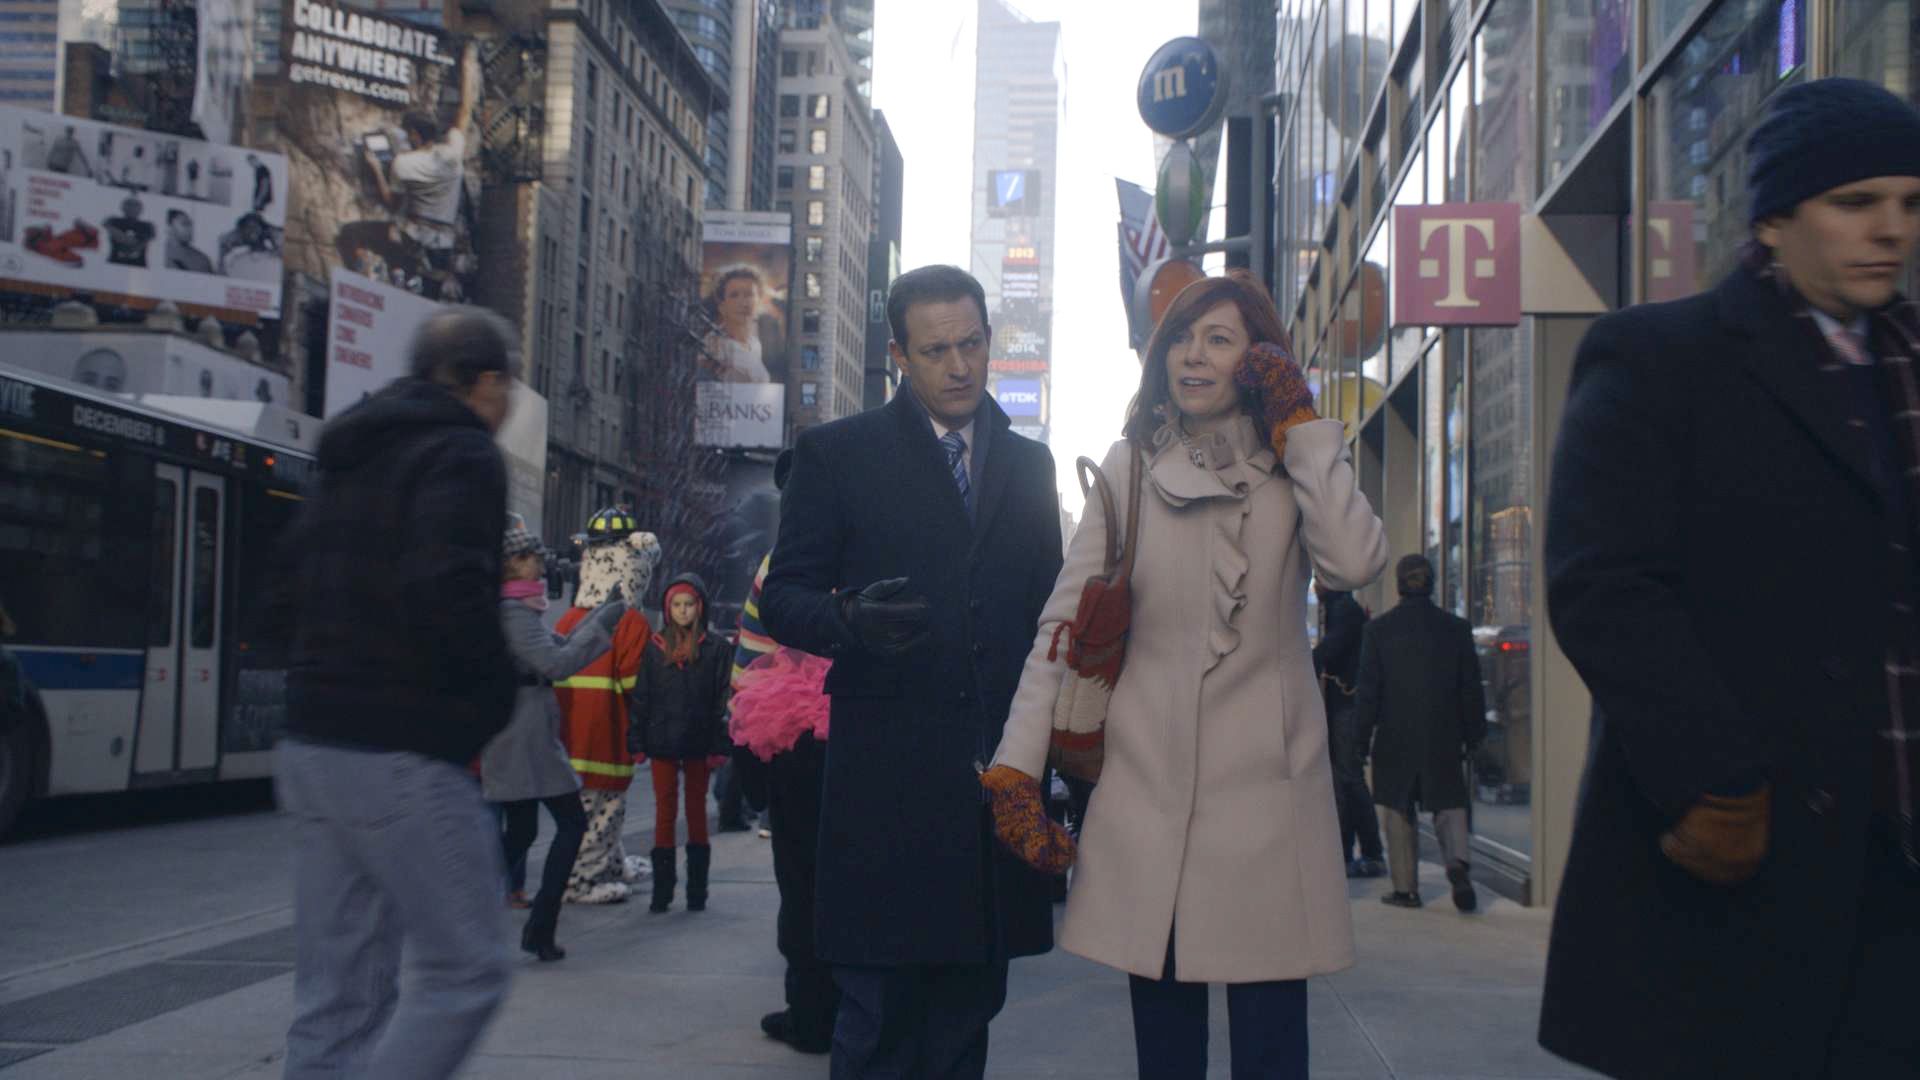 The Good Wife goes to New York in